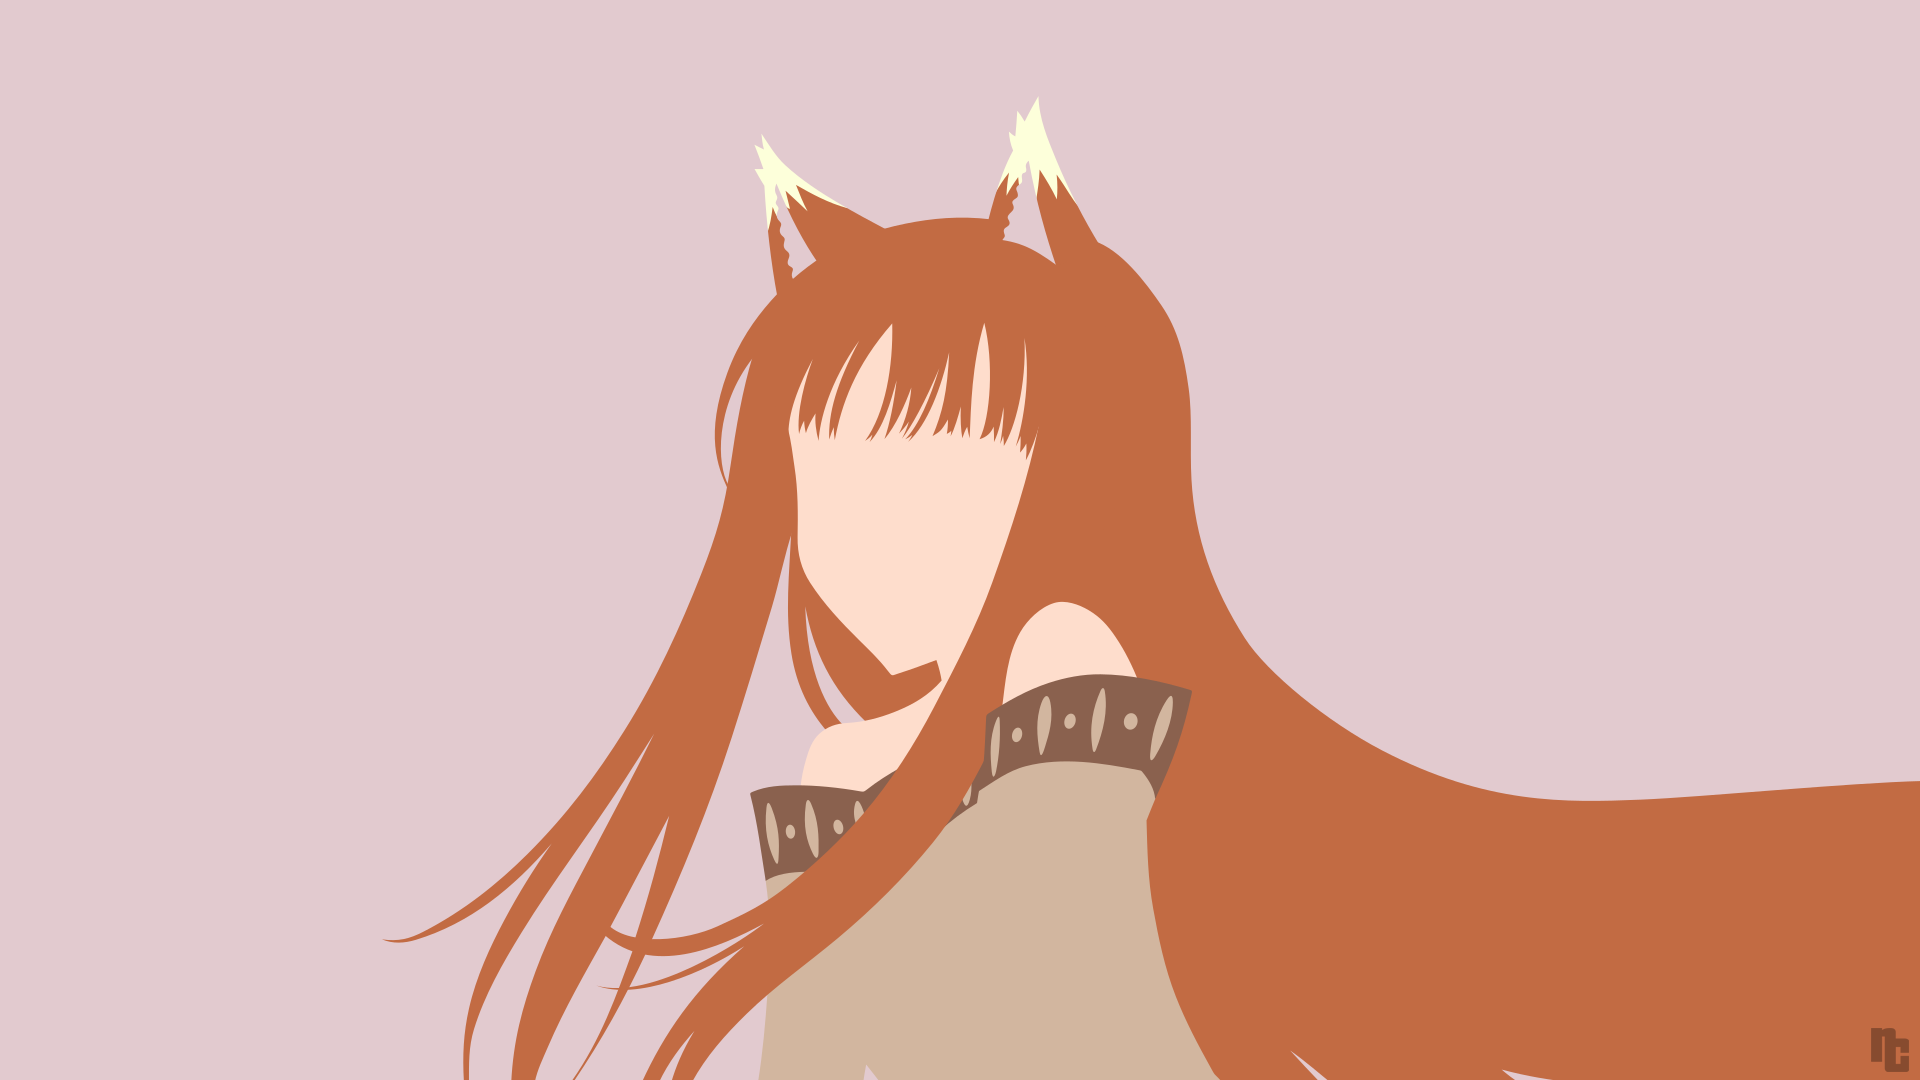 Holo Wallpapers Wallpaper